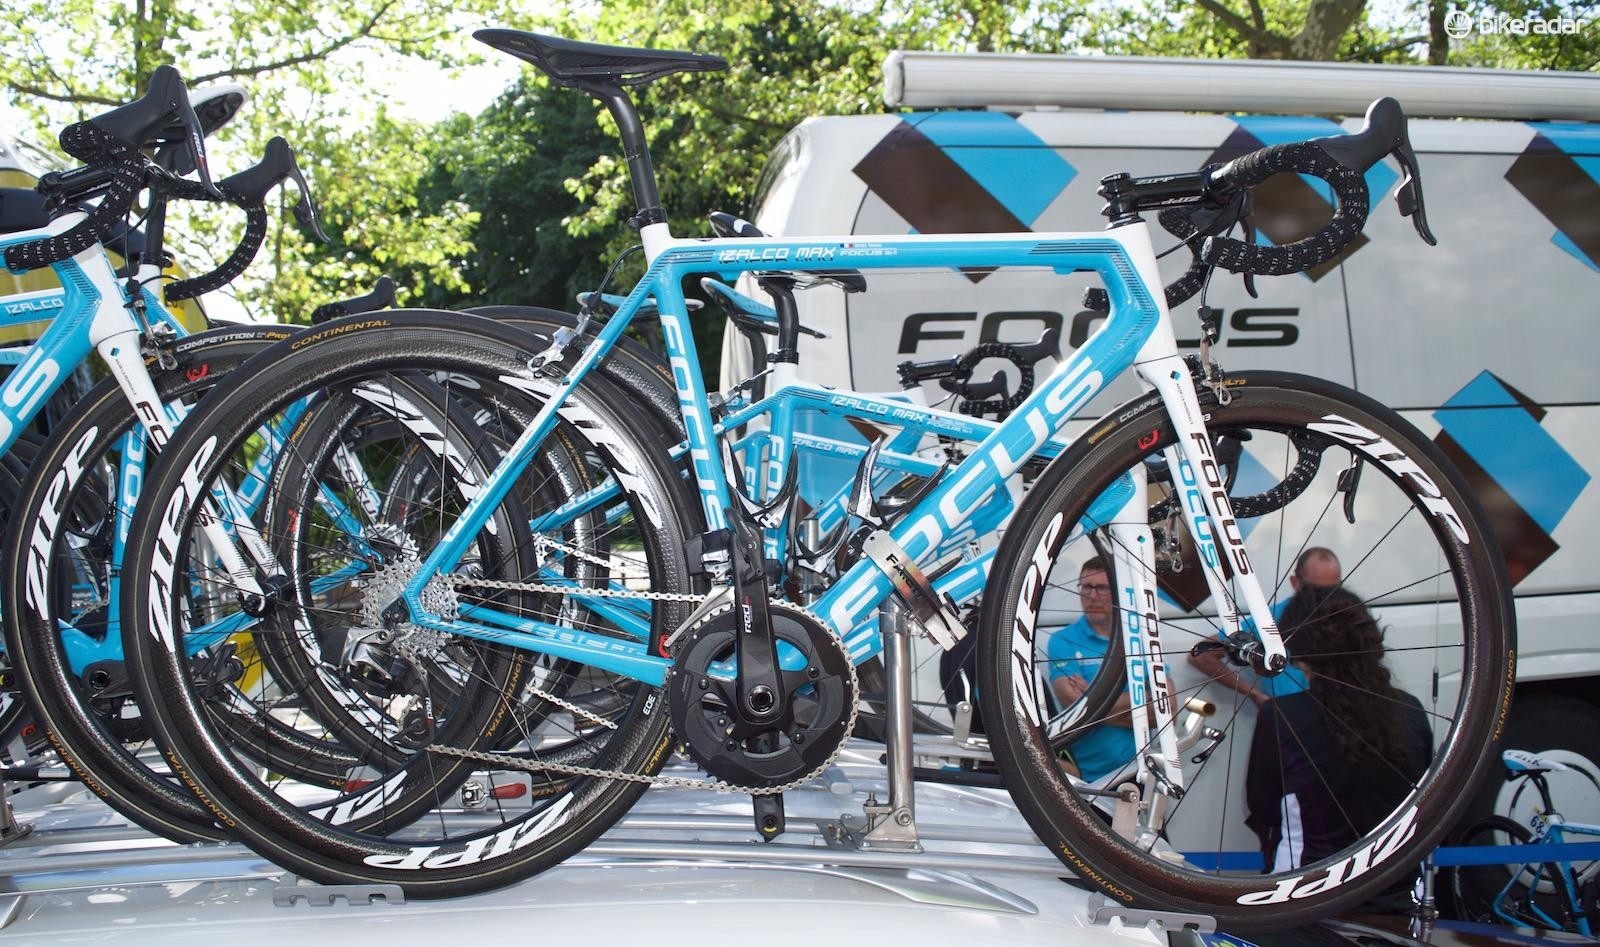 Romain Bardet's Focus Izalco Max, equipped with SRAM Red eTap